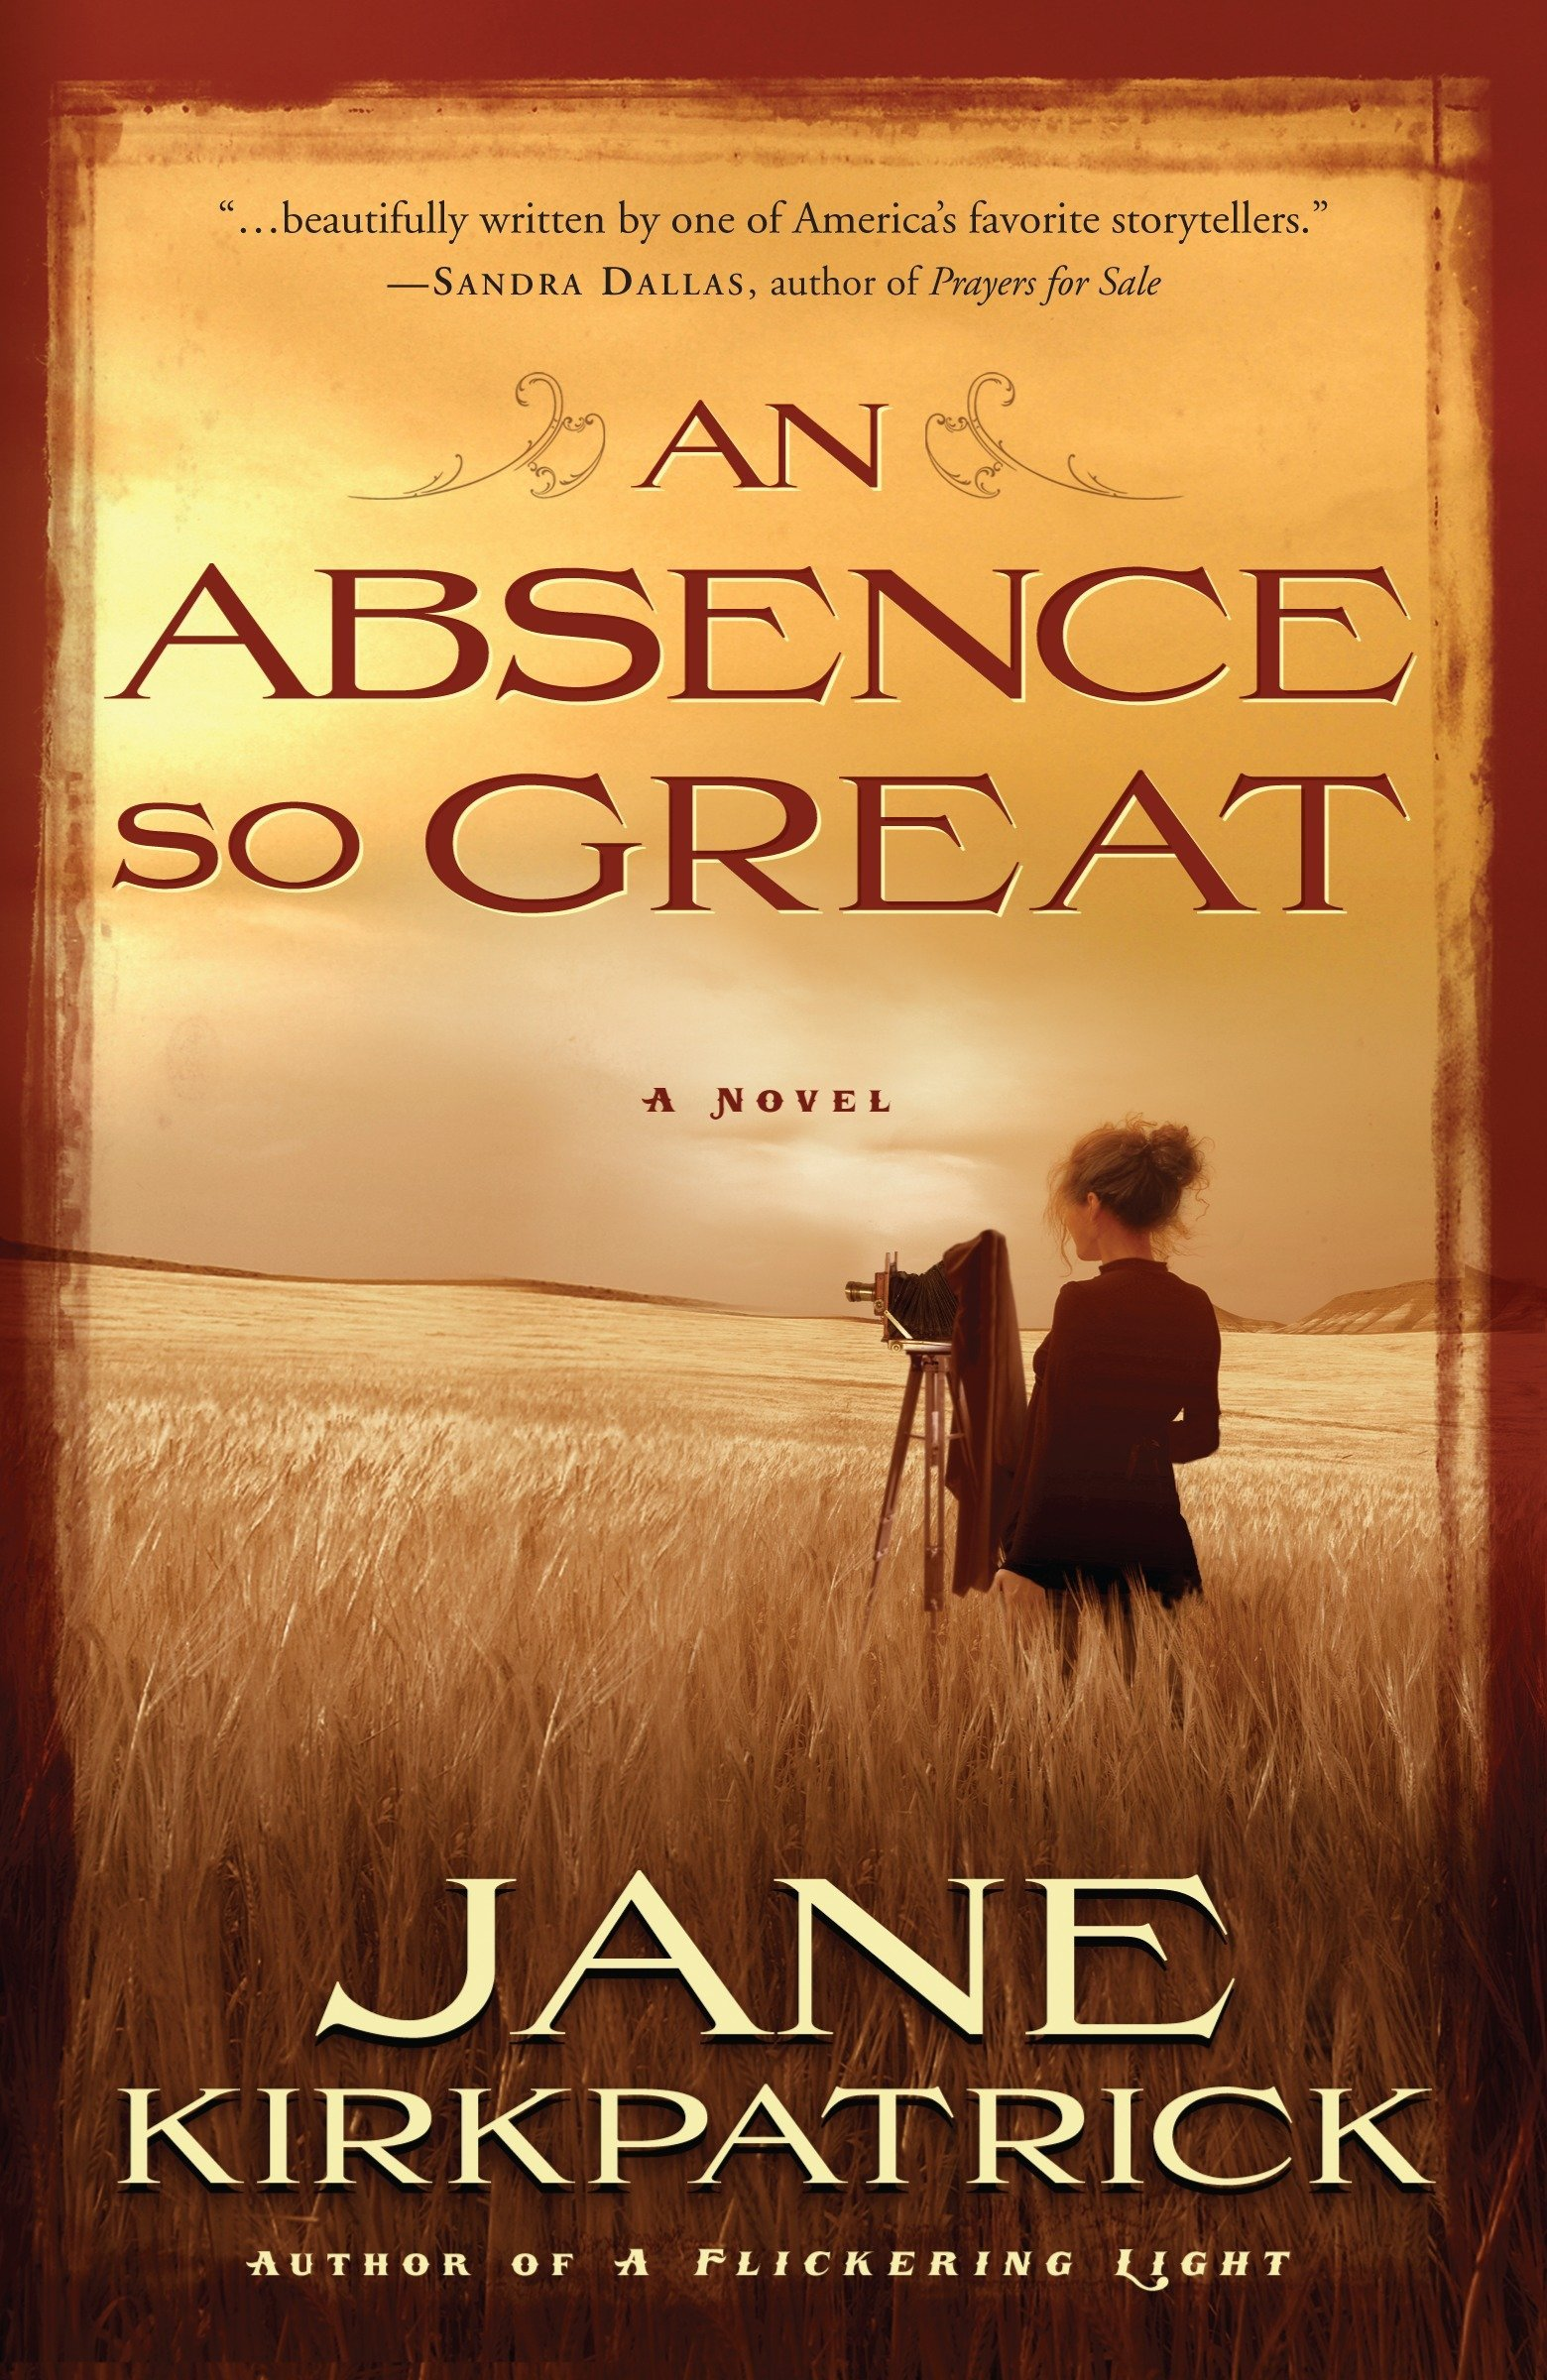 Download An Absence So Great: A Novel (Portraits of the Heart) PDF